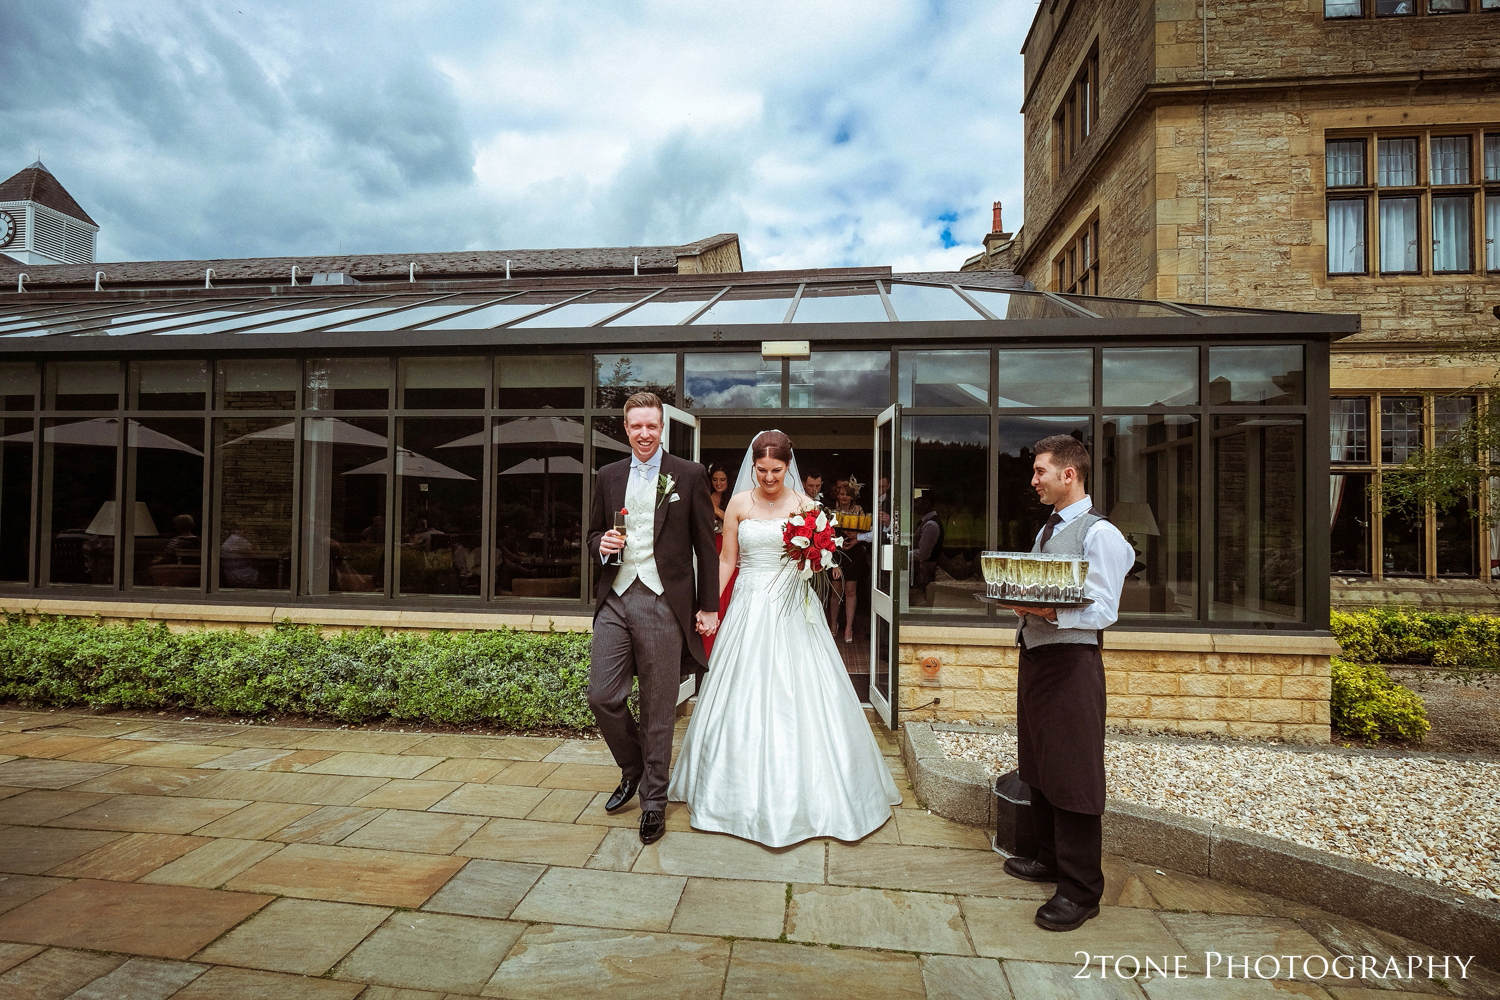 The weather was perfect, sunny but not scorching hot, warm, no wind andso straight after the ceremony they stepped outside to enjoy their drinks reception on the terrace.